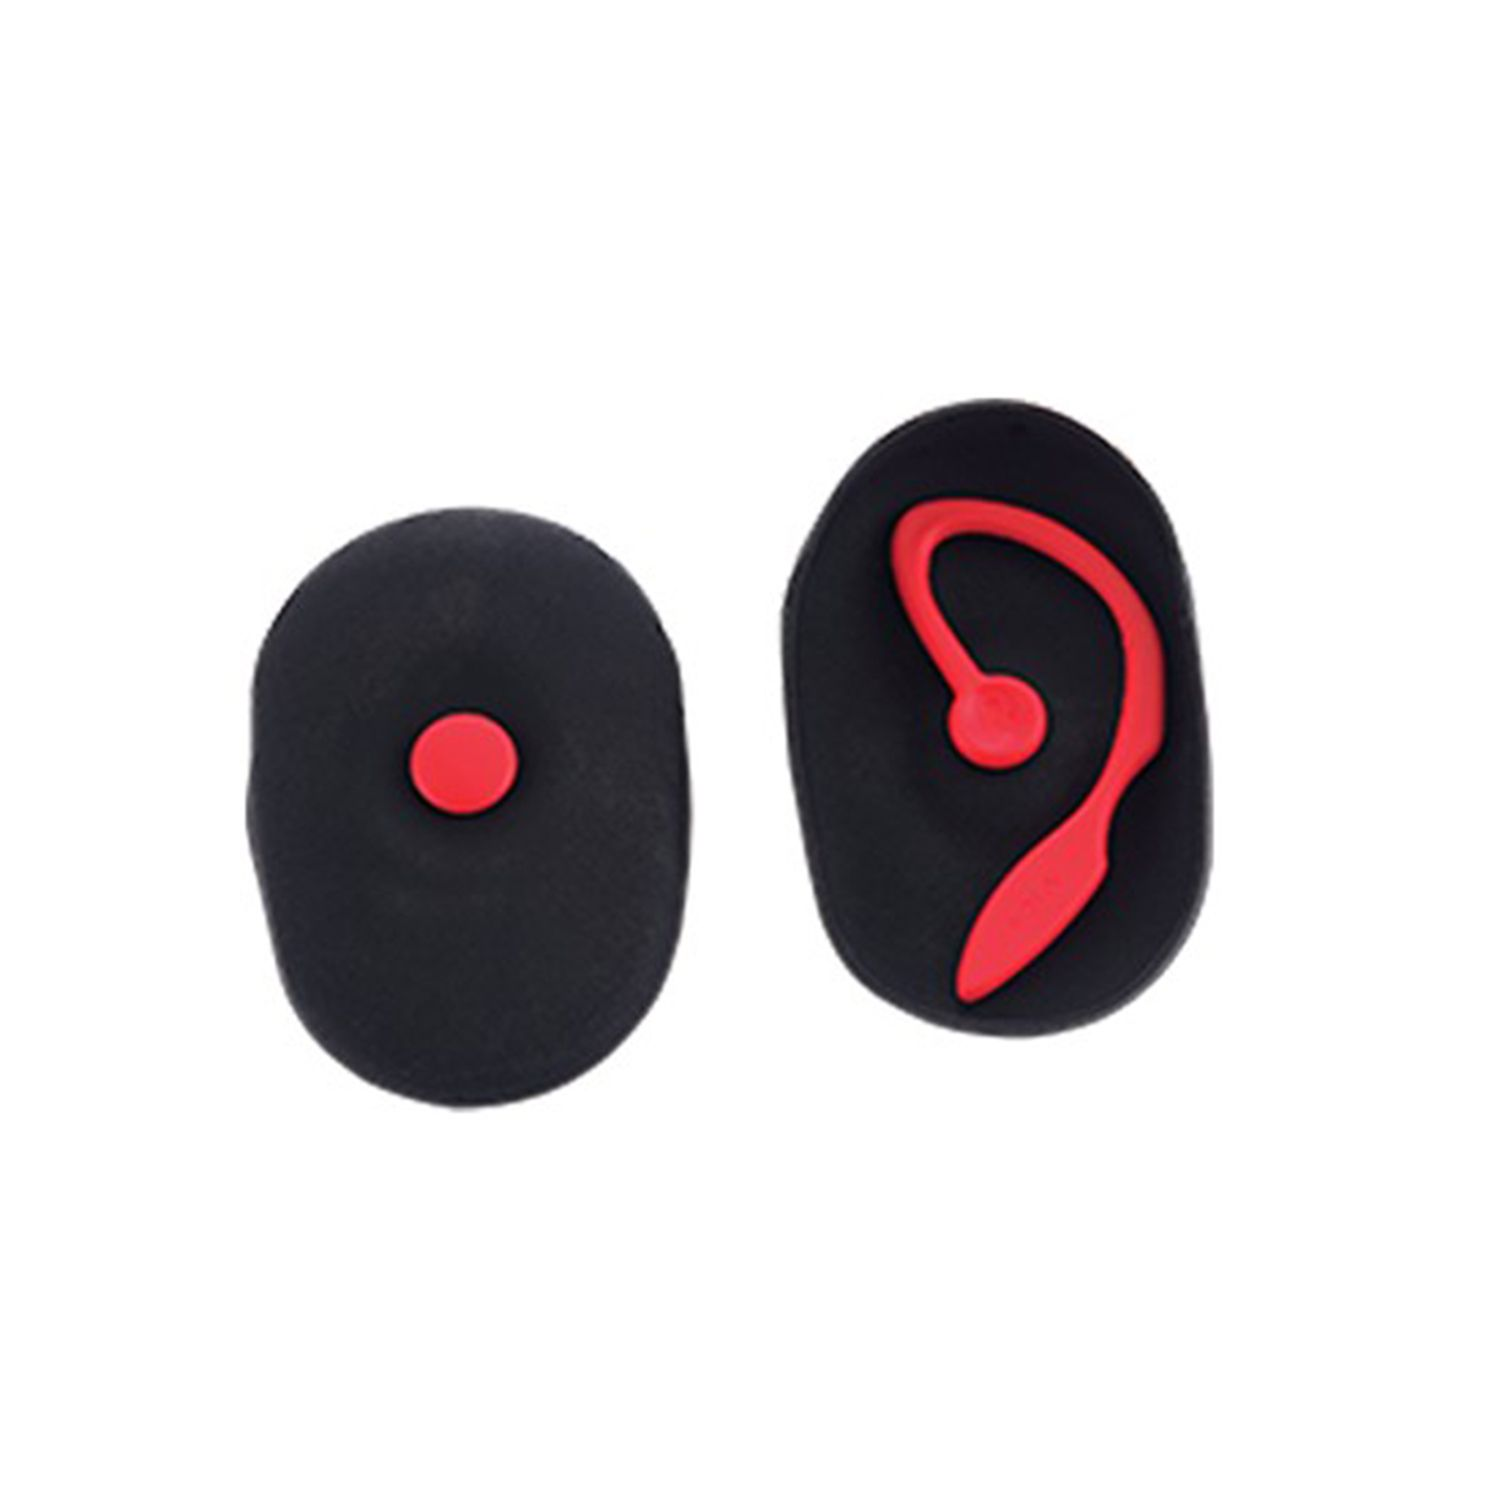 Colour Protecting Ear Cap